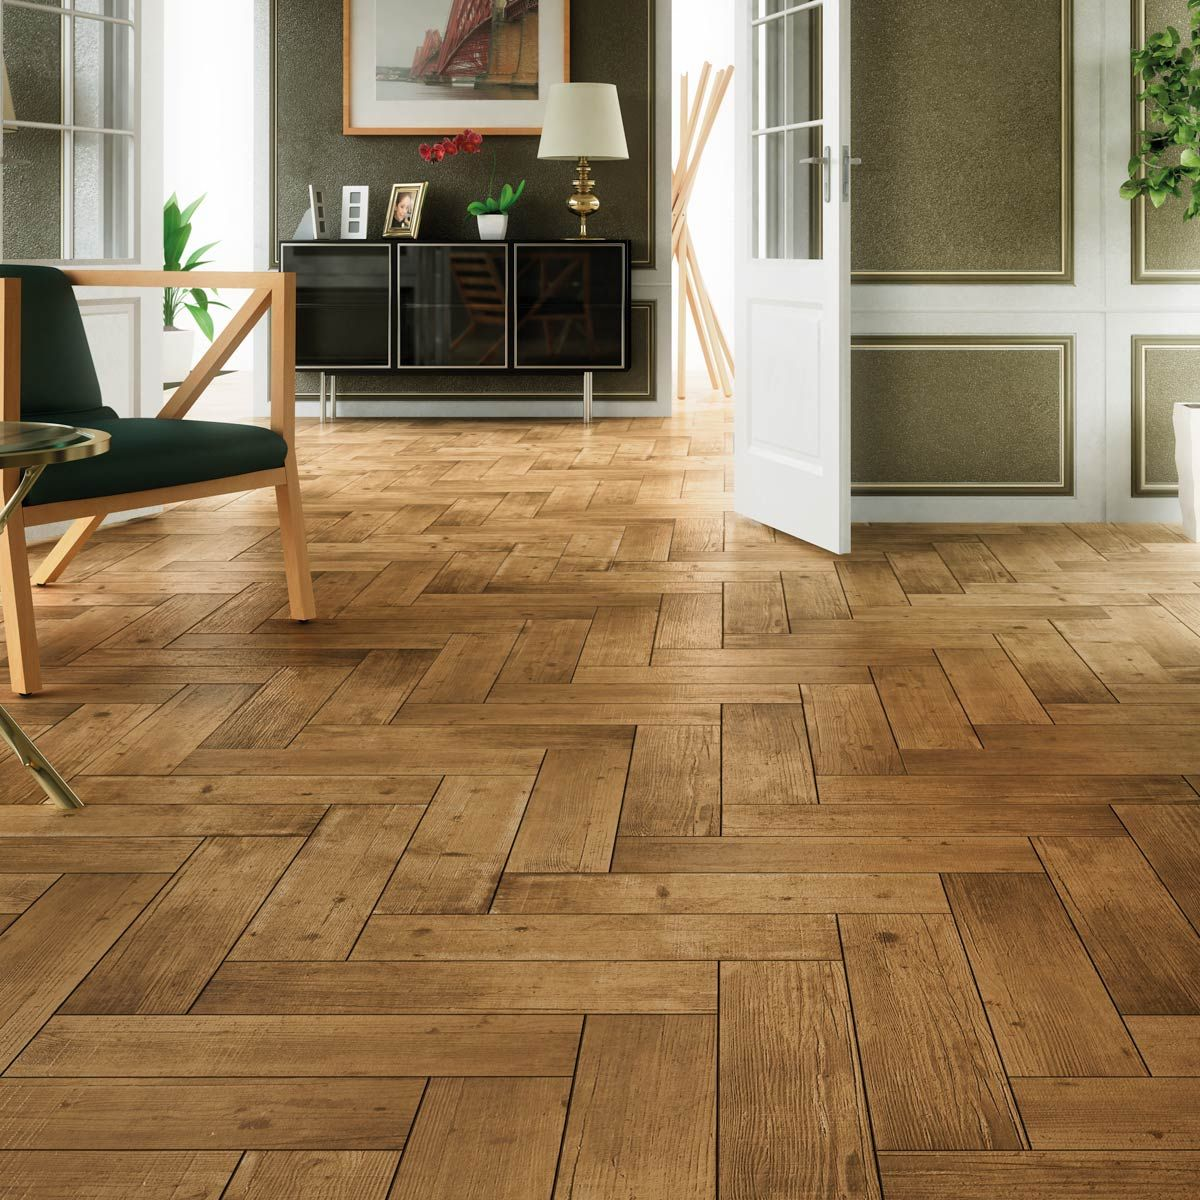 Wood Effect Floor Tiles